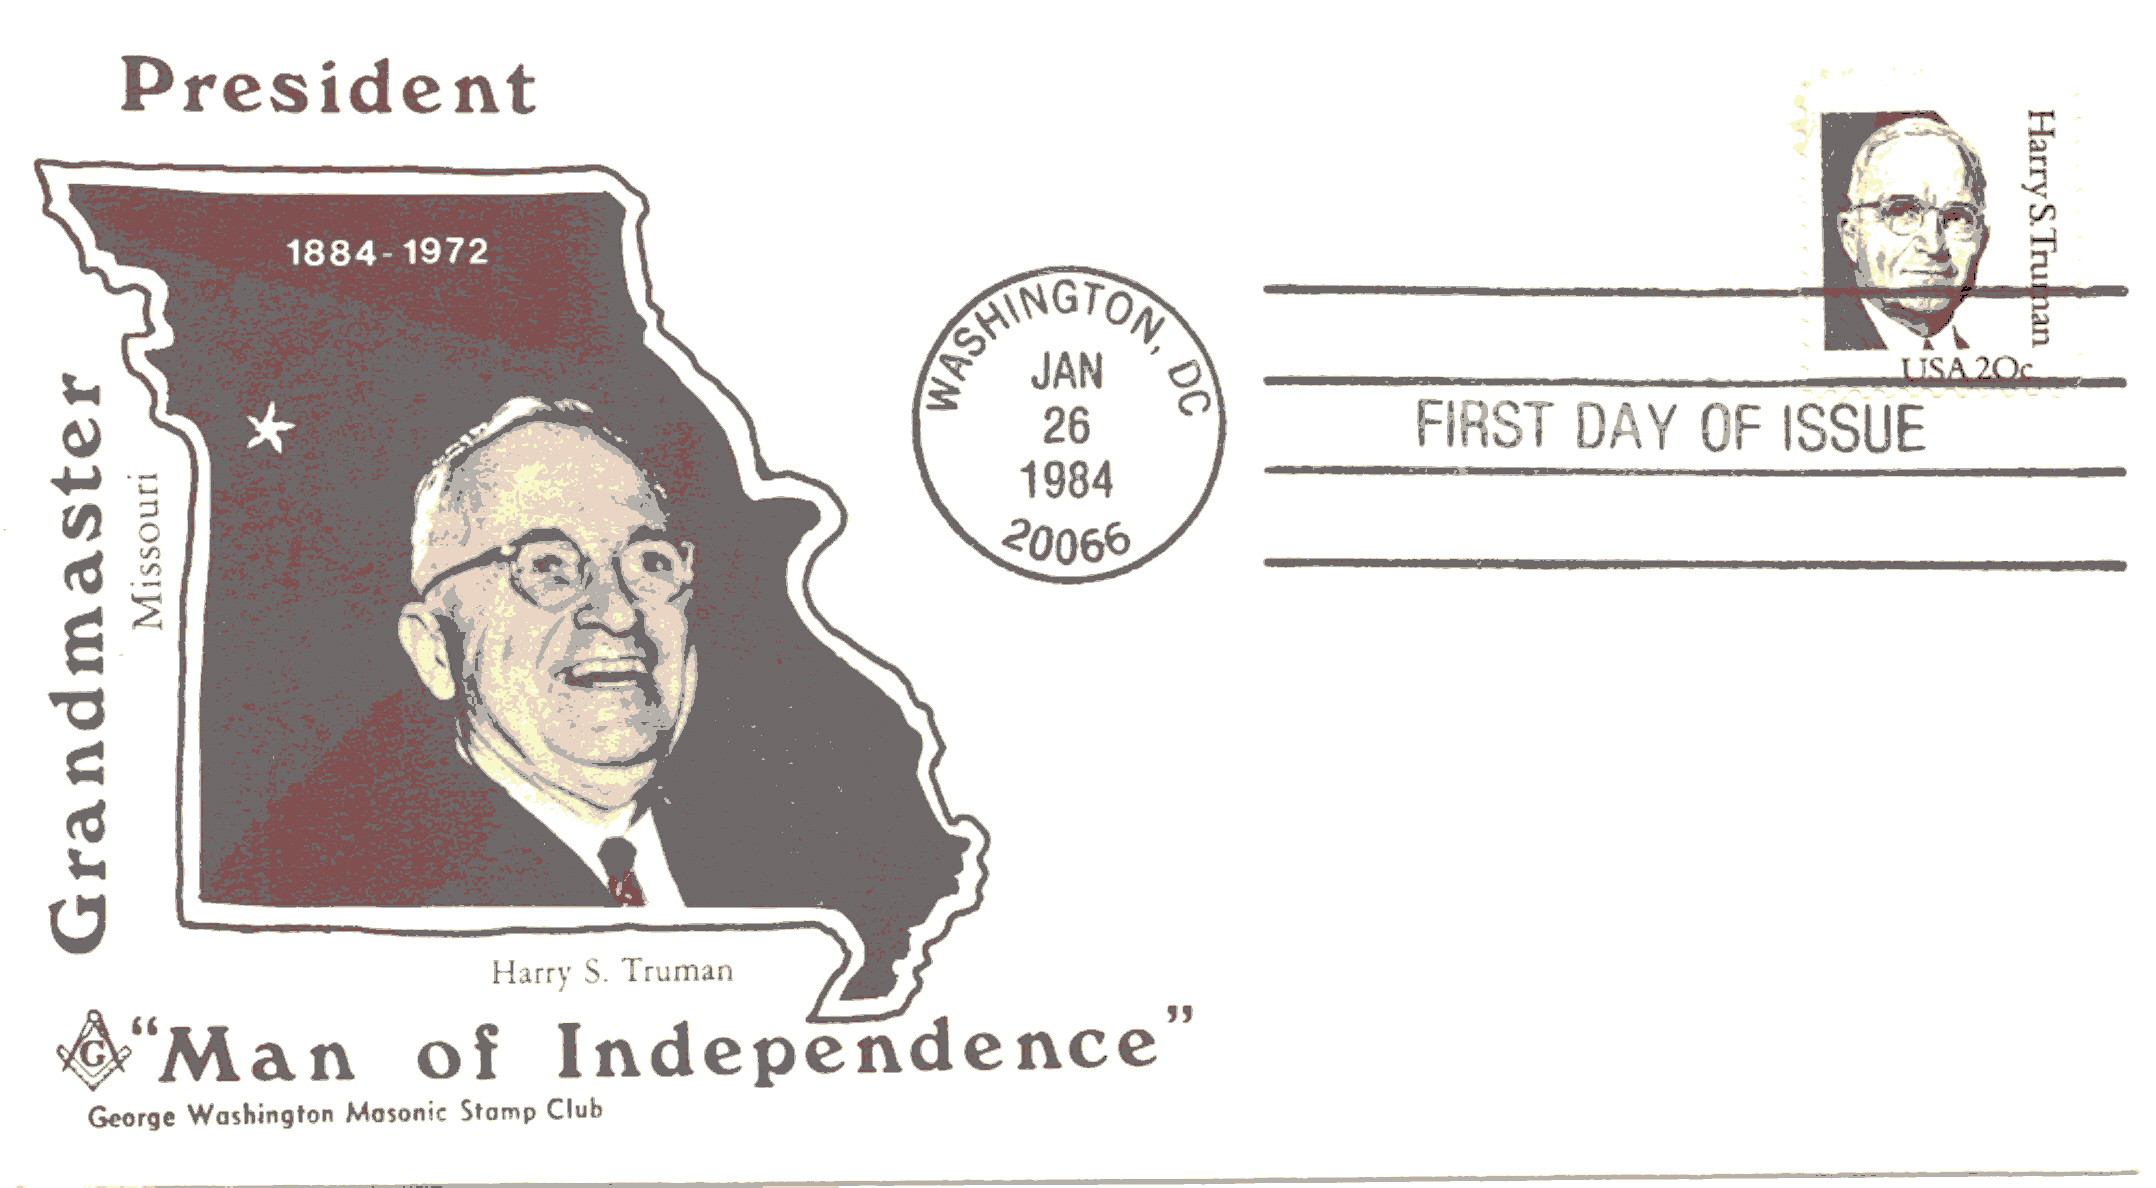 HST Definitive FDC #11